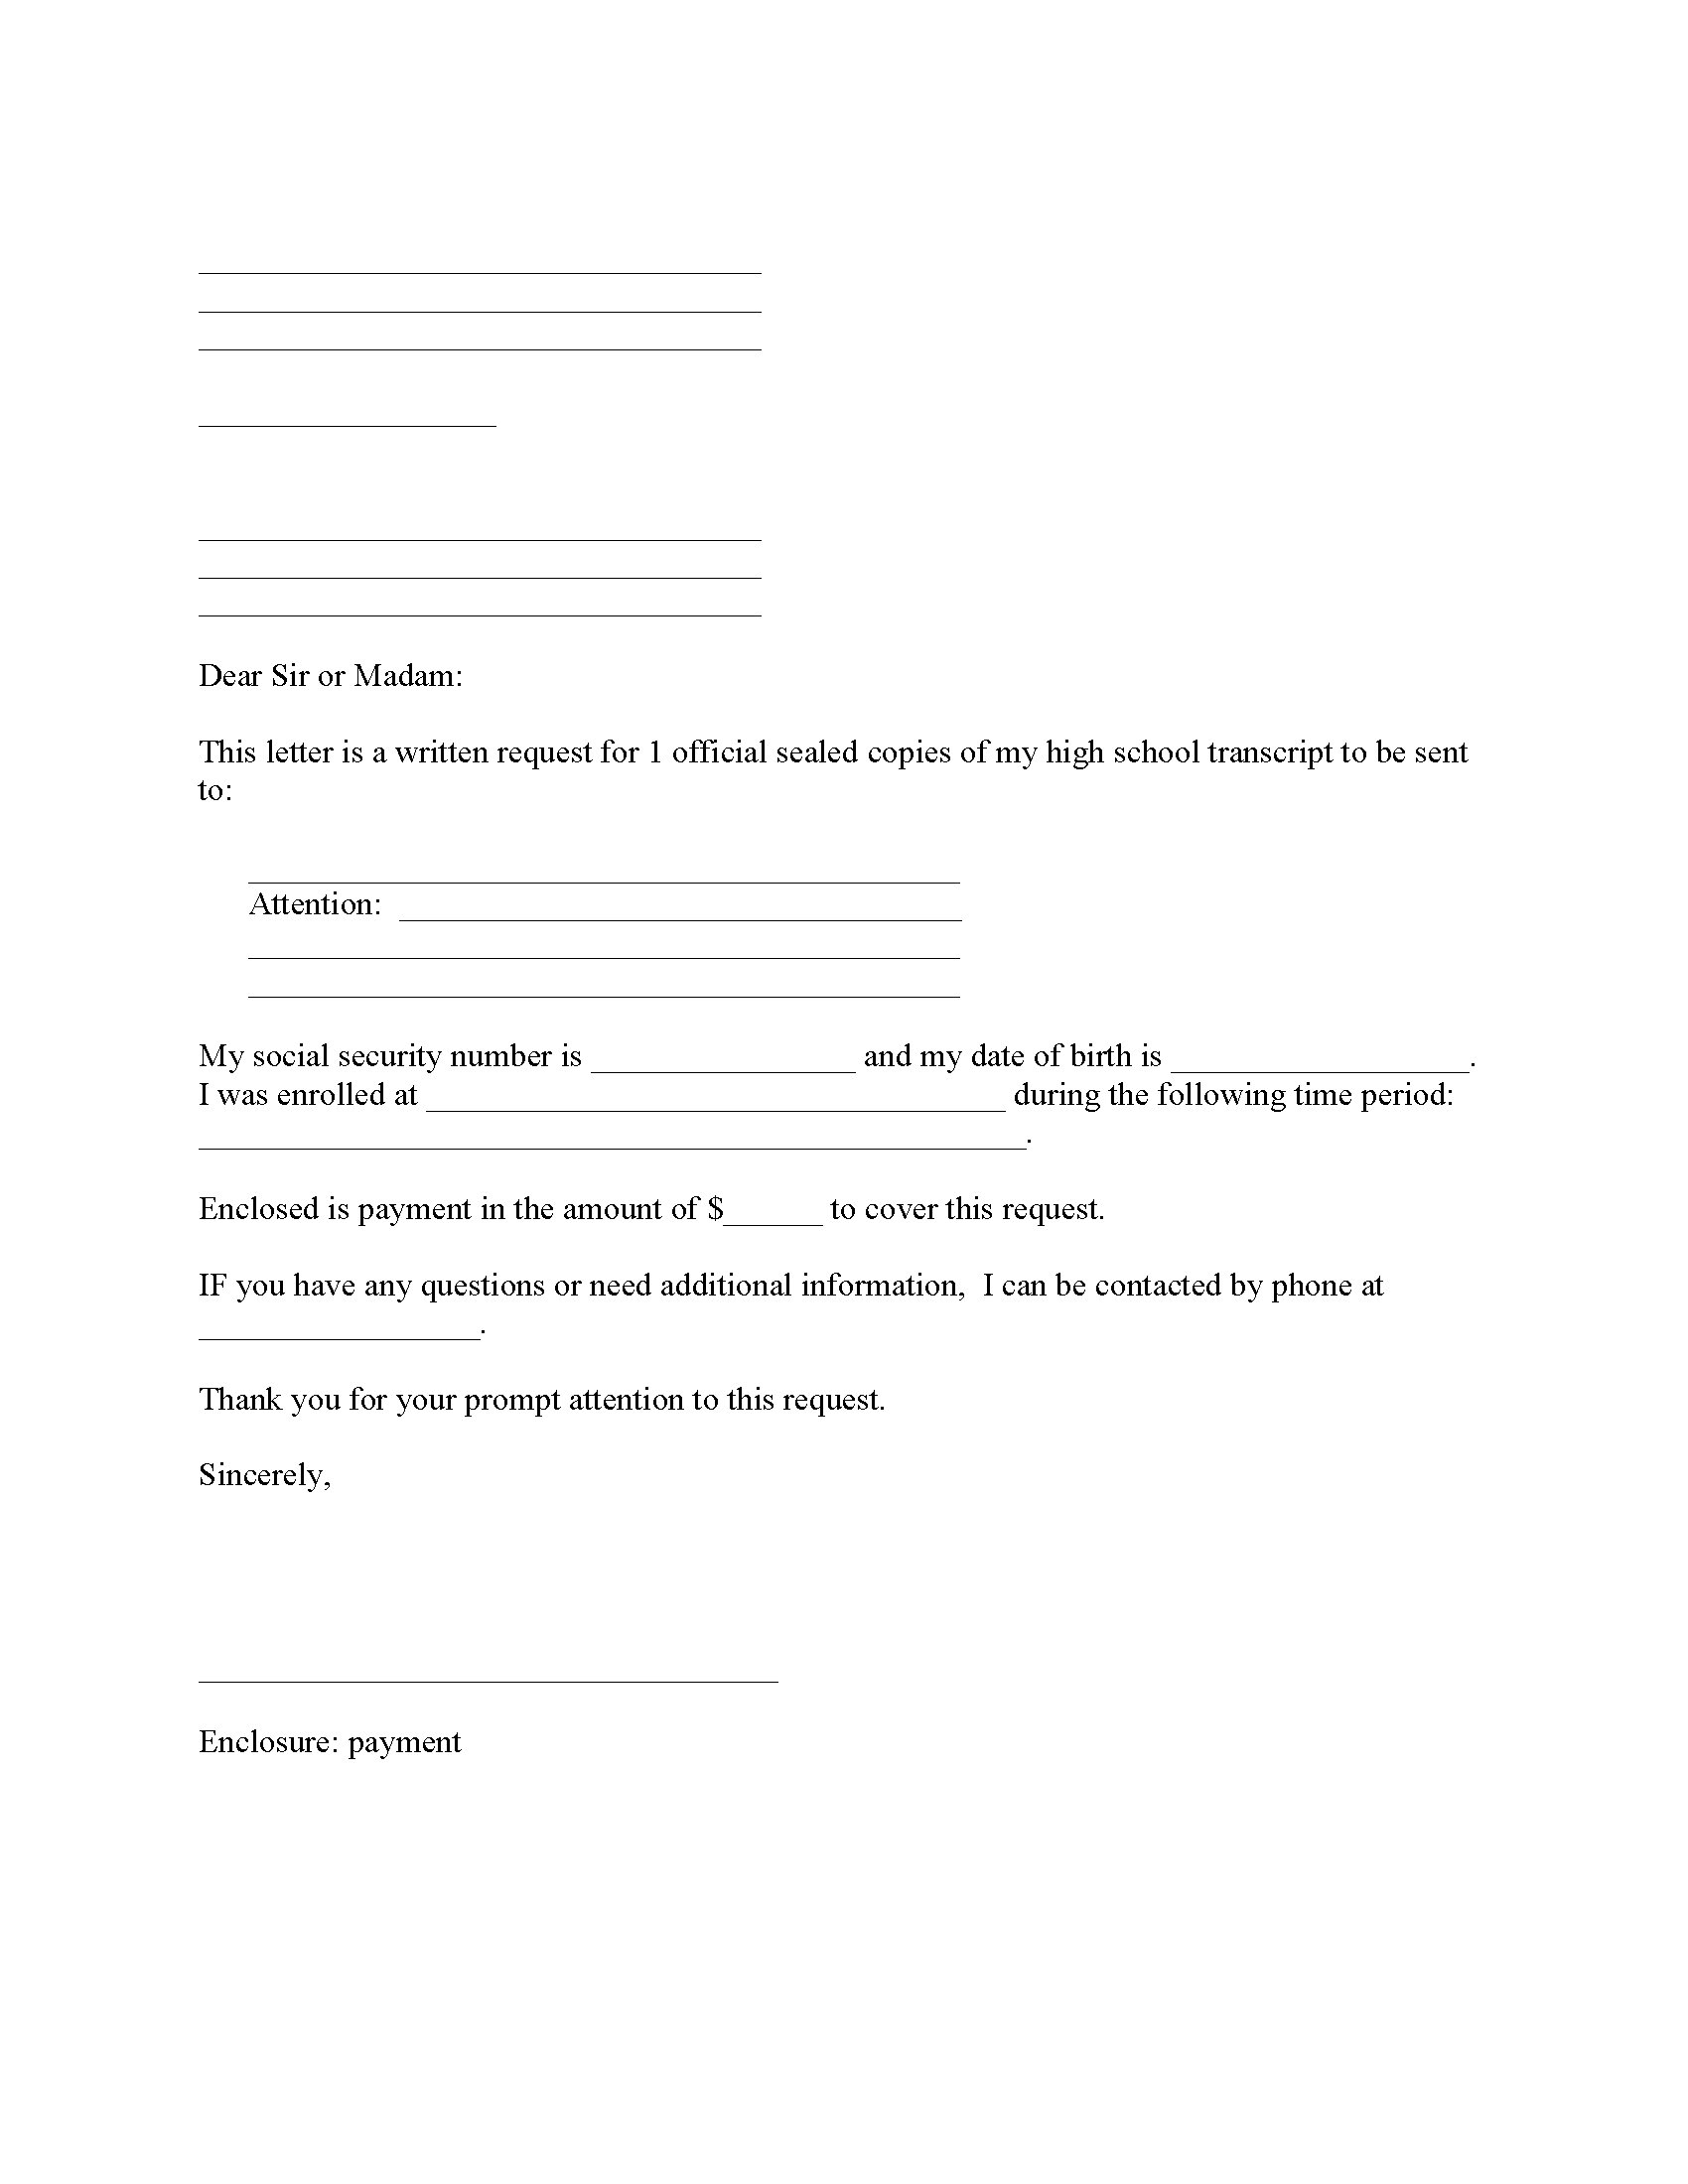 Request Copy of High School Transcripts